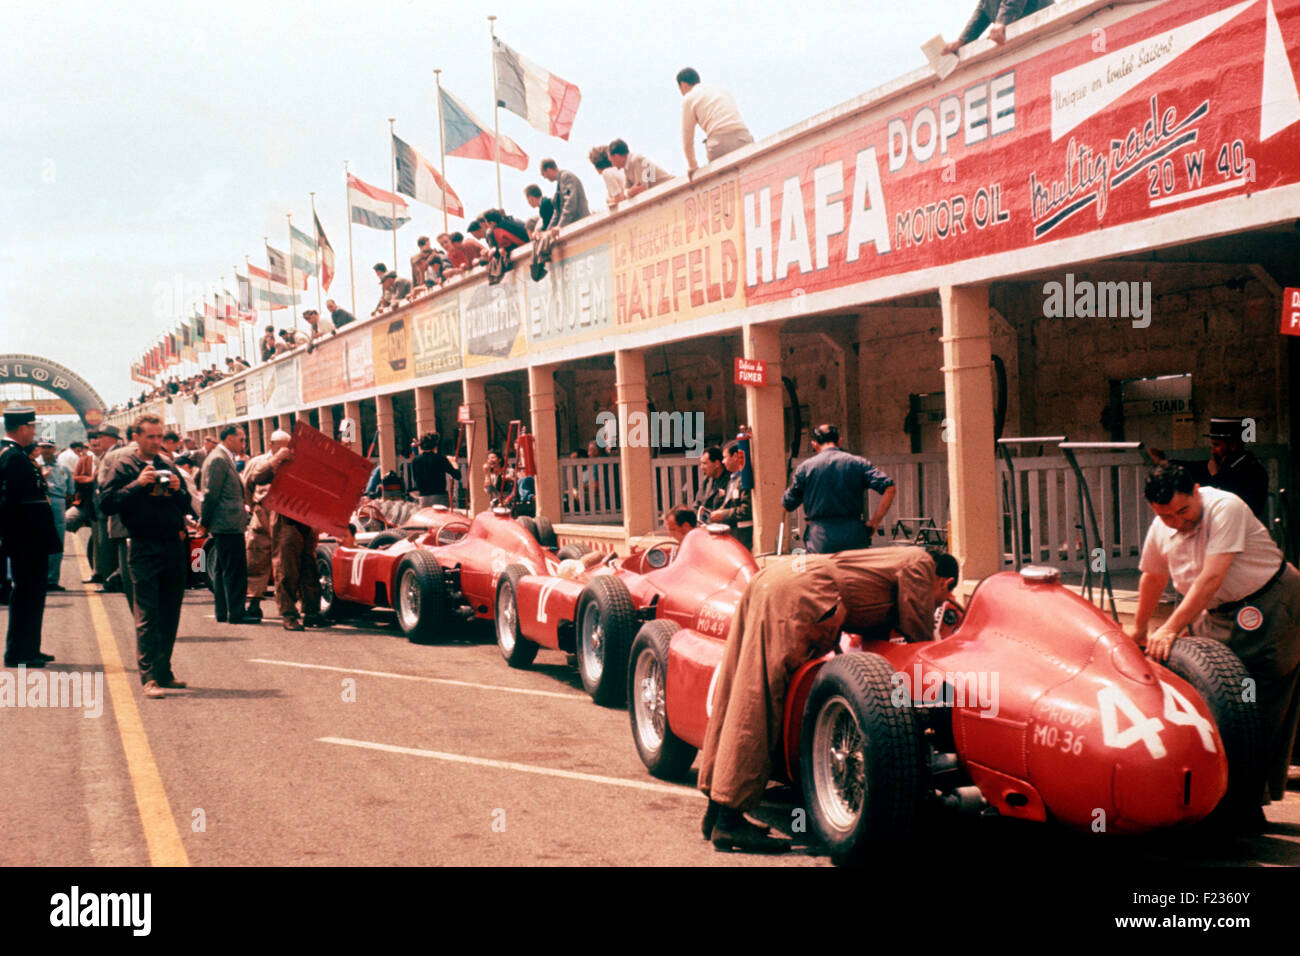 Phil Hill with Leica camera on left, Ferrari D50s Pits, French GP Reims 1 July 1956 - Stock Image